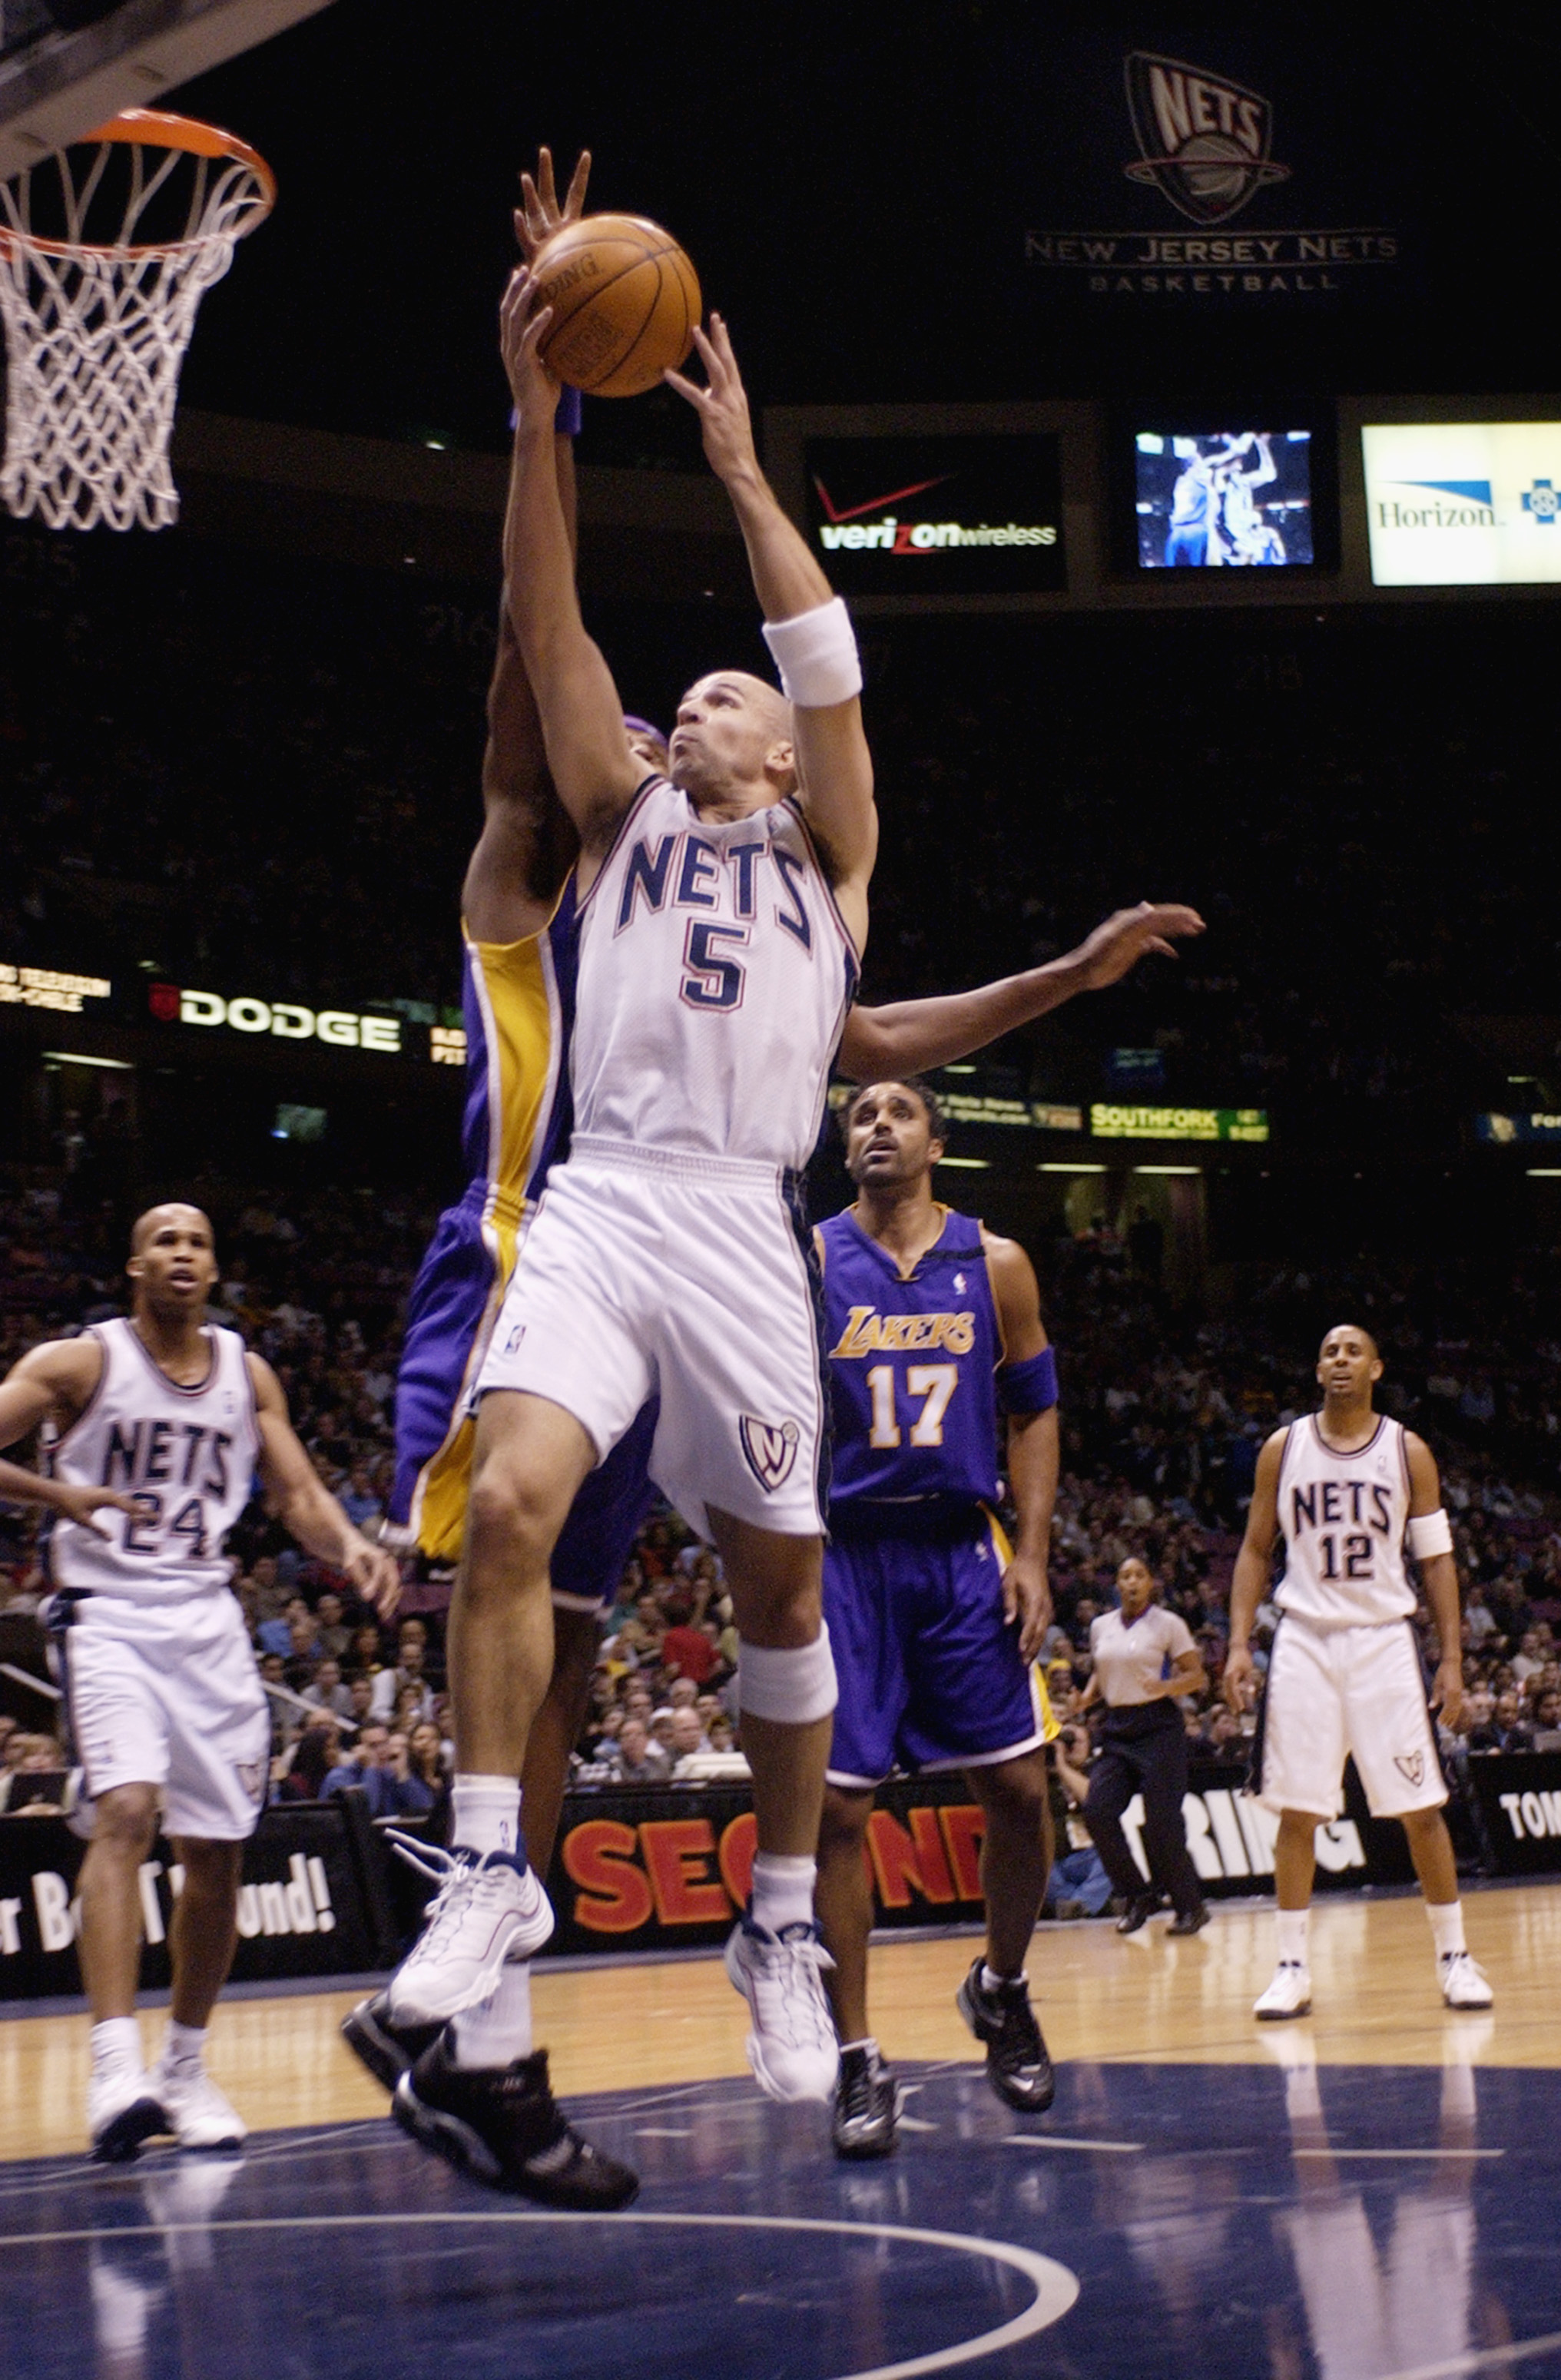 EAST RUTHERFORD, NJ - DECEMBER 19:  Jason Kidd #5 of the New Jersey Nets shoots a driving layup against the Los Angeles Lakers during the NBA game at Continental Airlines Arena on December 19, 2002 in East Rutherford, New Jersey.  The Nets won 98-71.  NOT